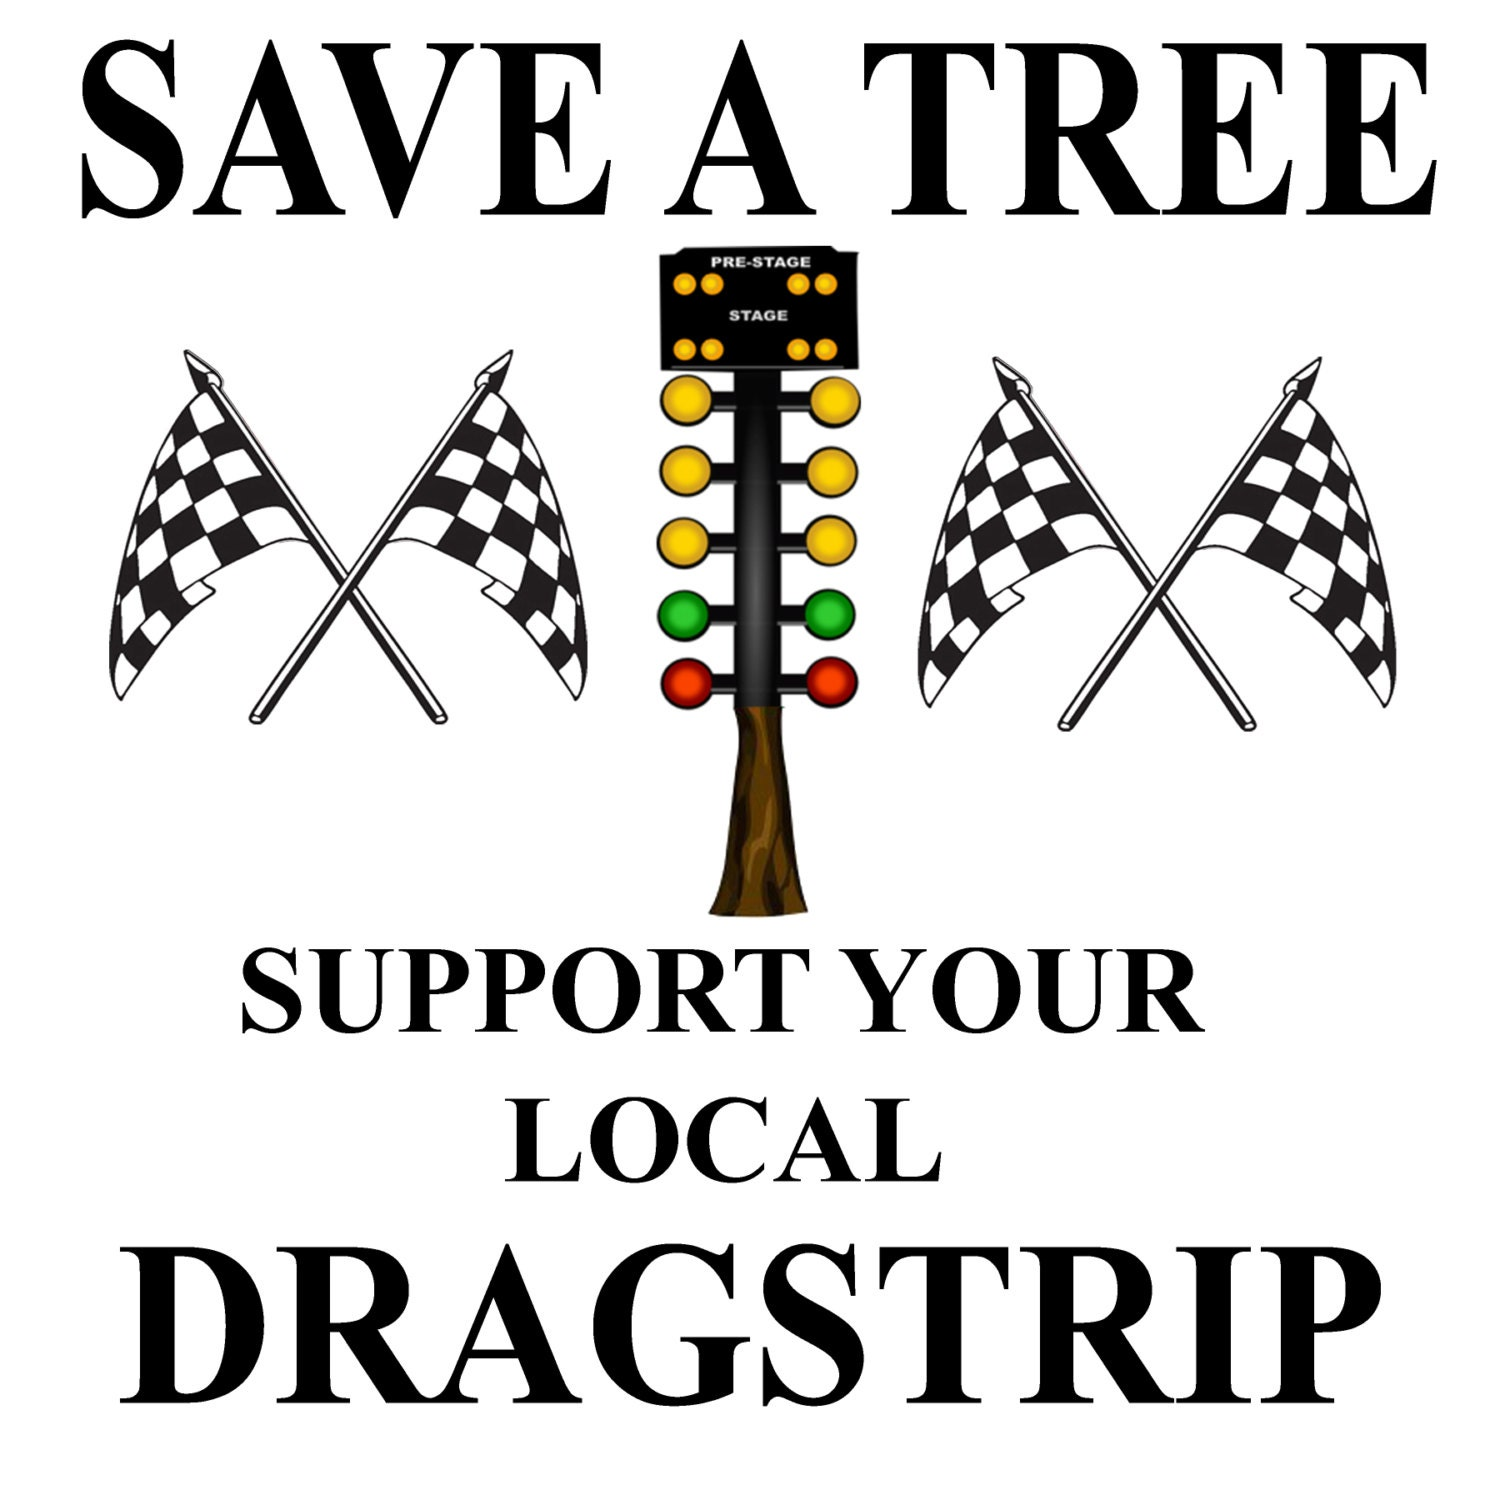 pro nova design save a tree support your local dragstrip